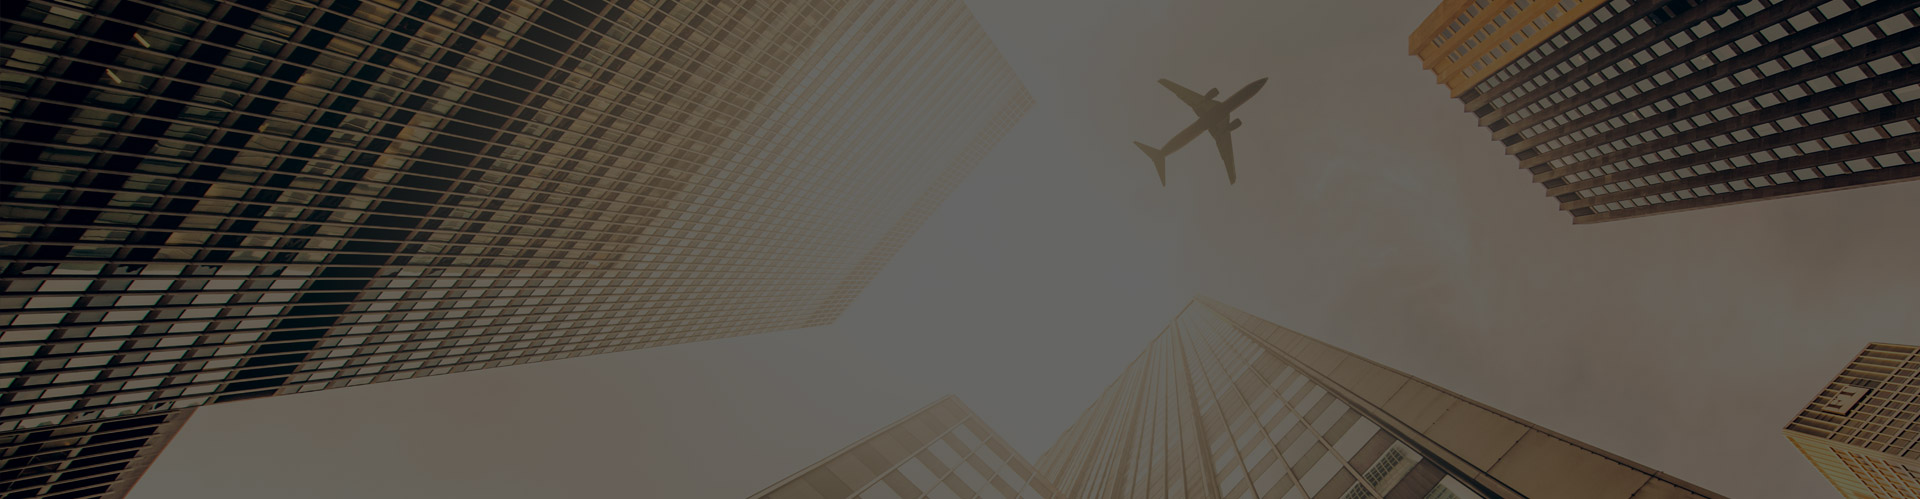 Continuous Pricing, Dynamic Offer Generation and Airline Retail